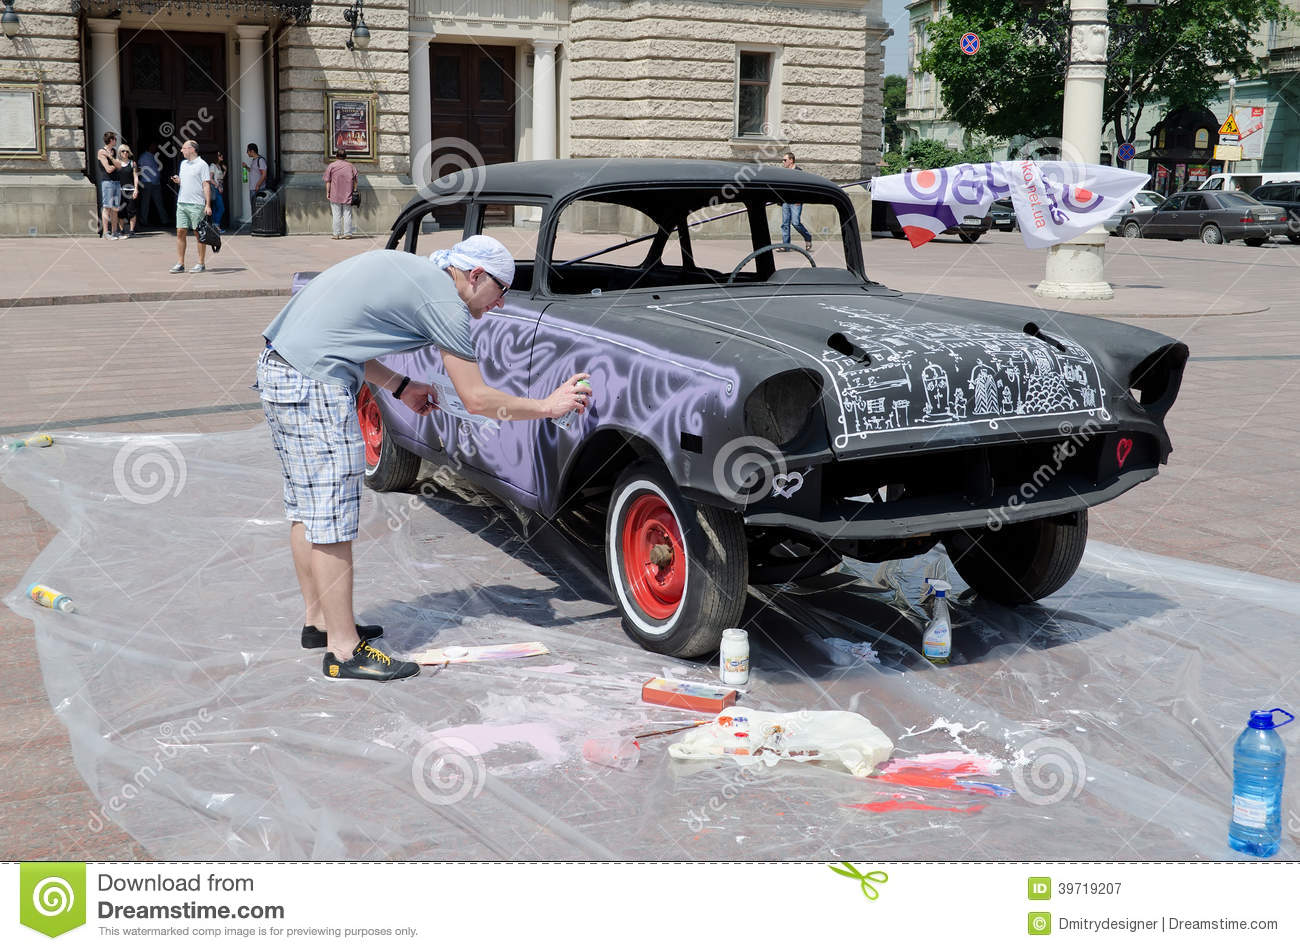 Airbrush Painting Retro Car On Display Outdoors In